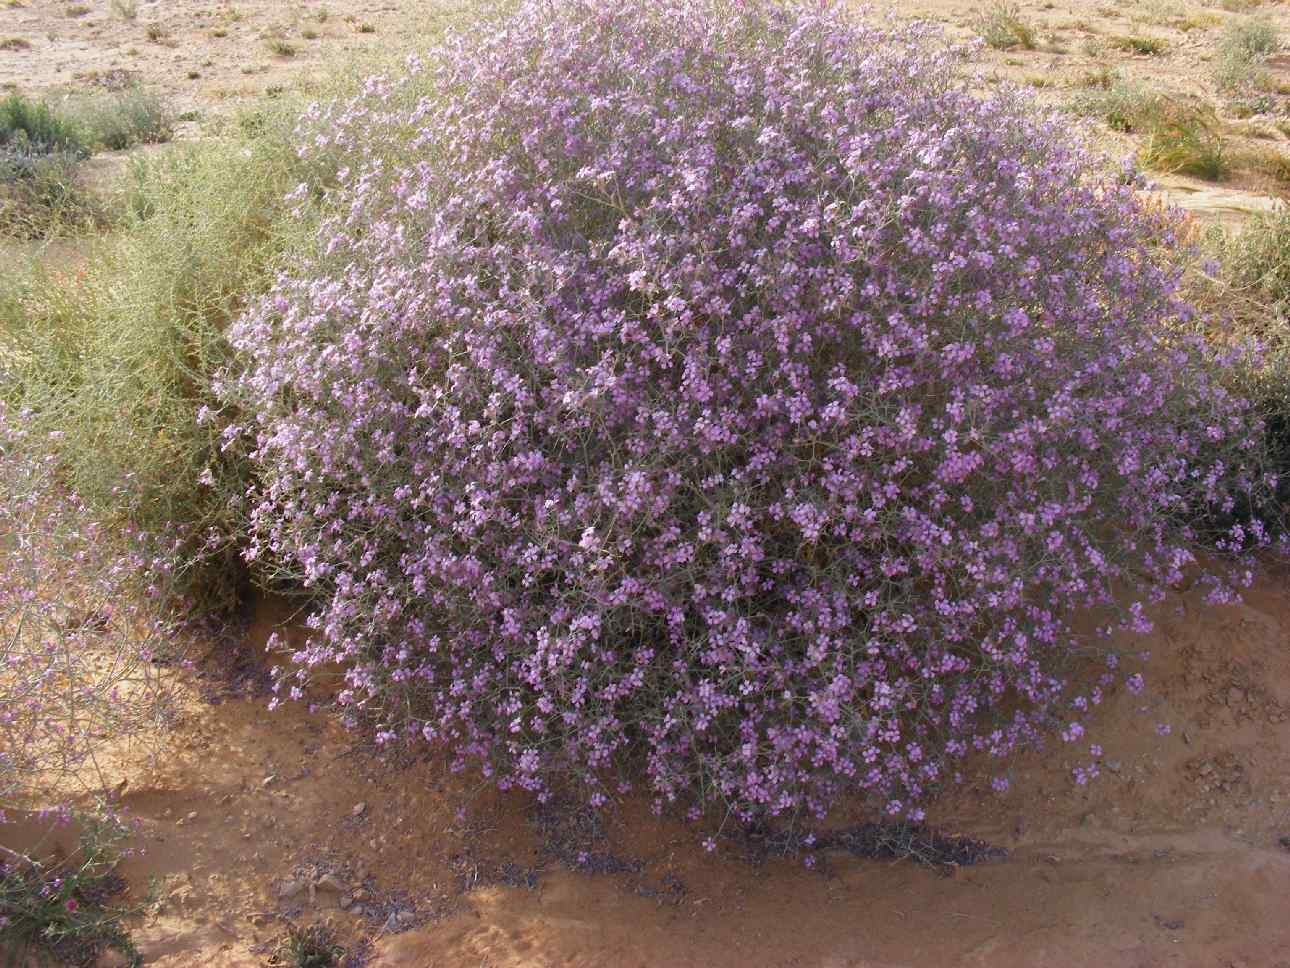 A purple flower ball in extreme desert, 2013 floods aftermath, Arava